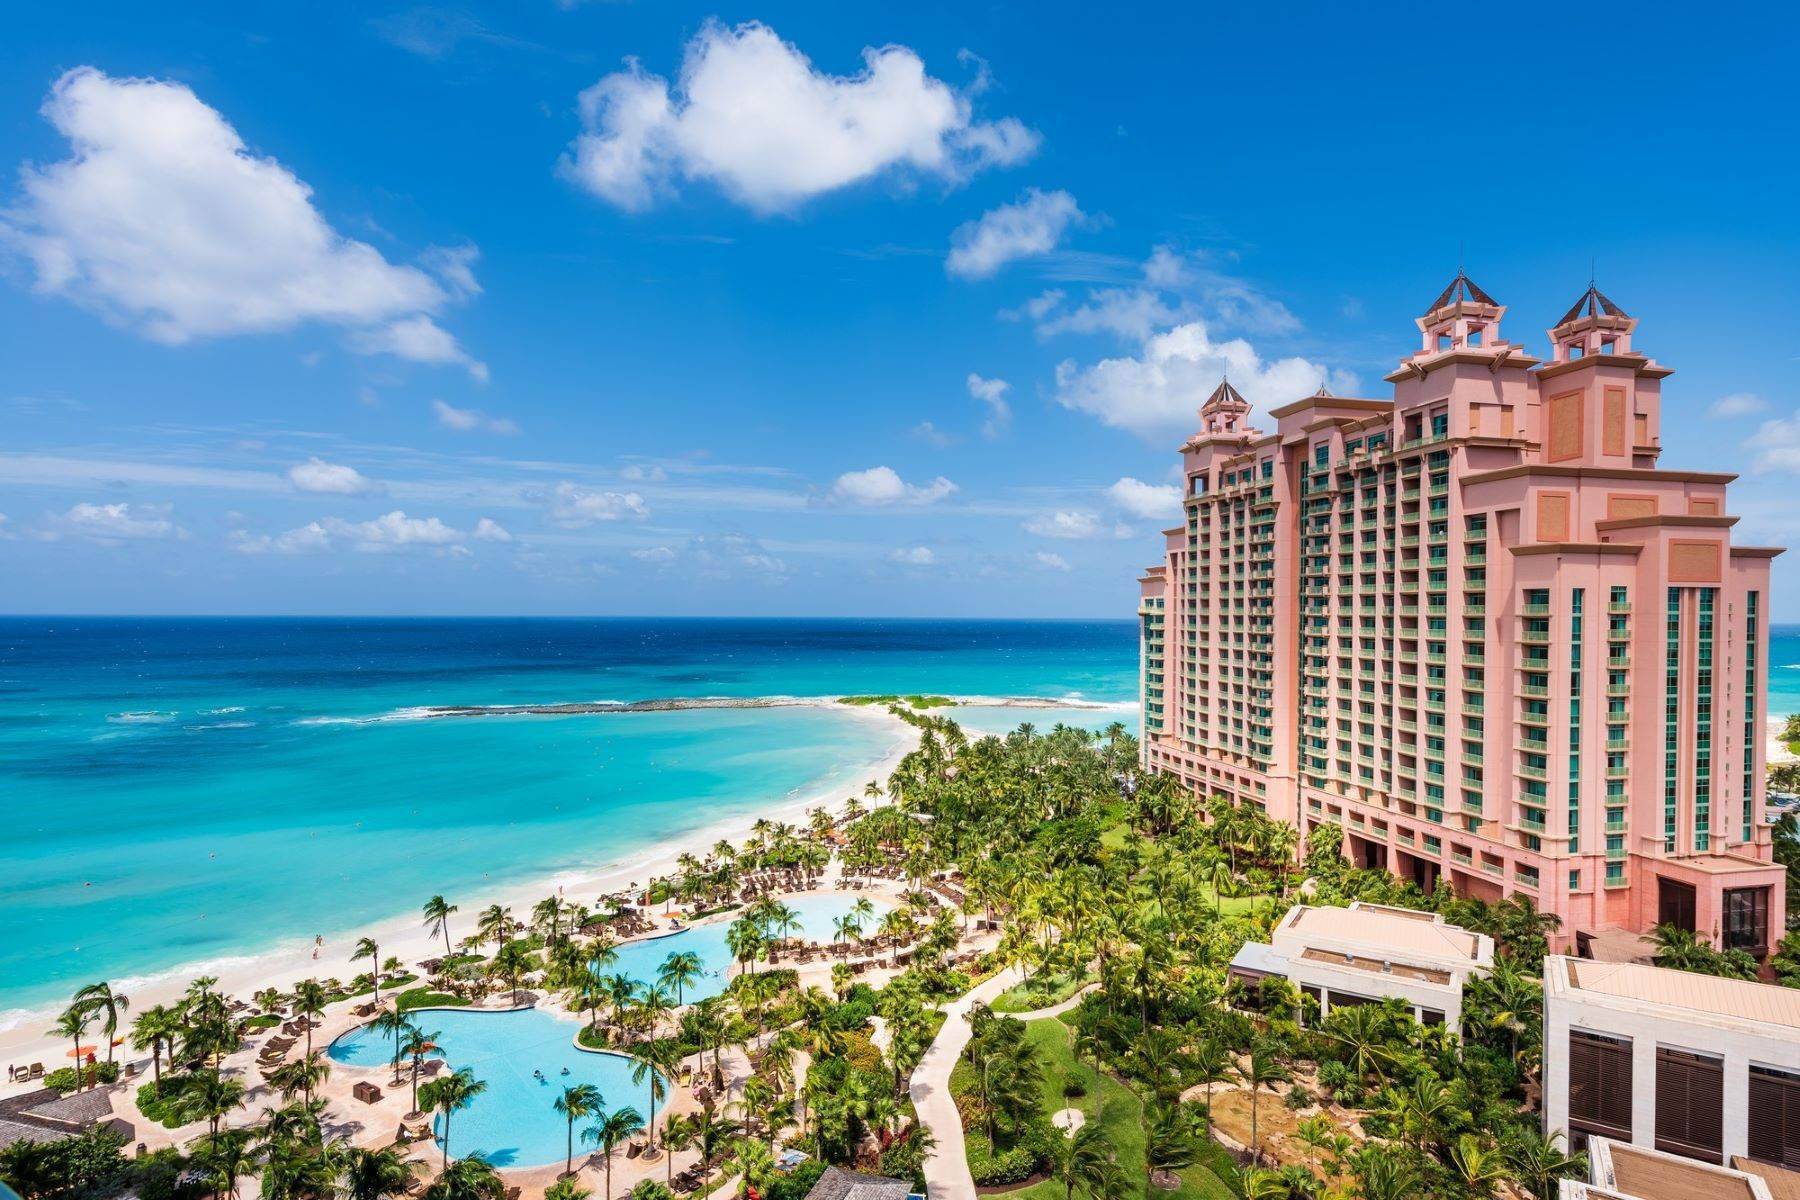 Condominiums for Sale at The Reef at Atlantis 14-908 The Reef At Atlantis, Paradise Island, Nassau And Paradise Island Bahamas